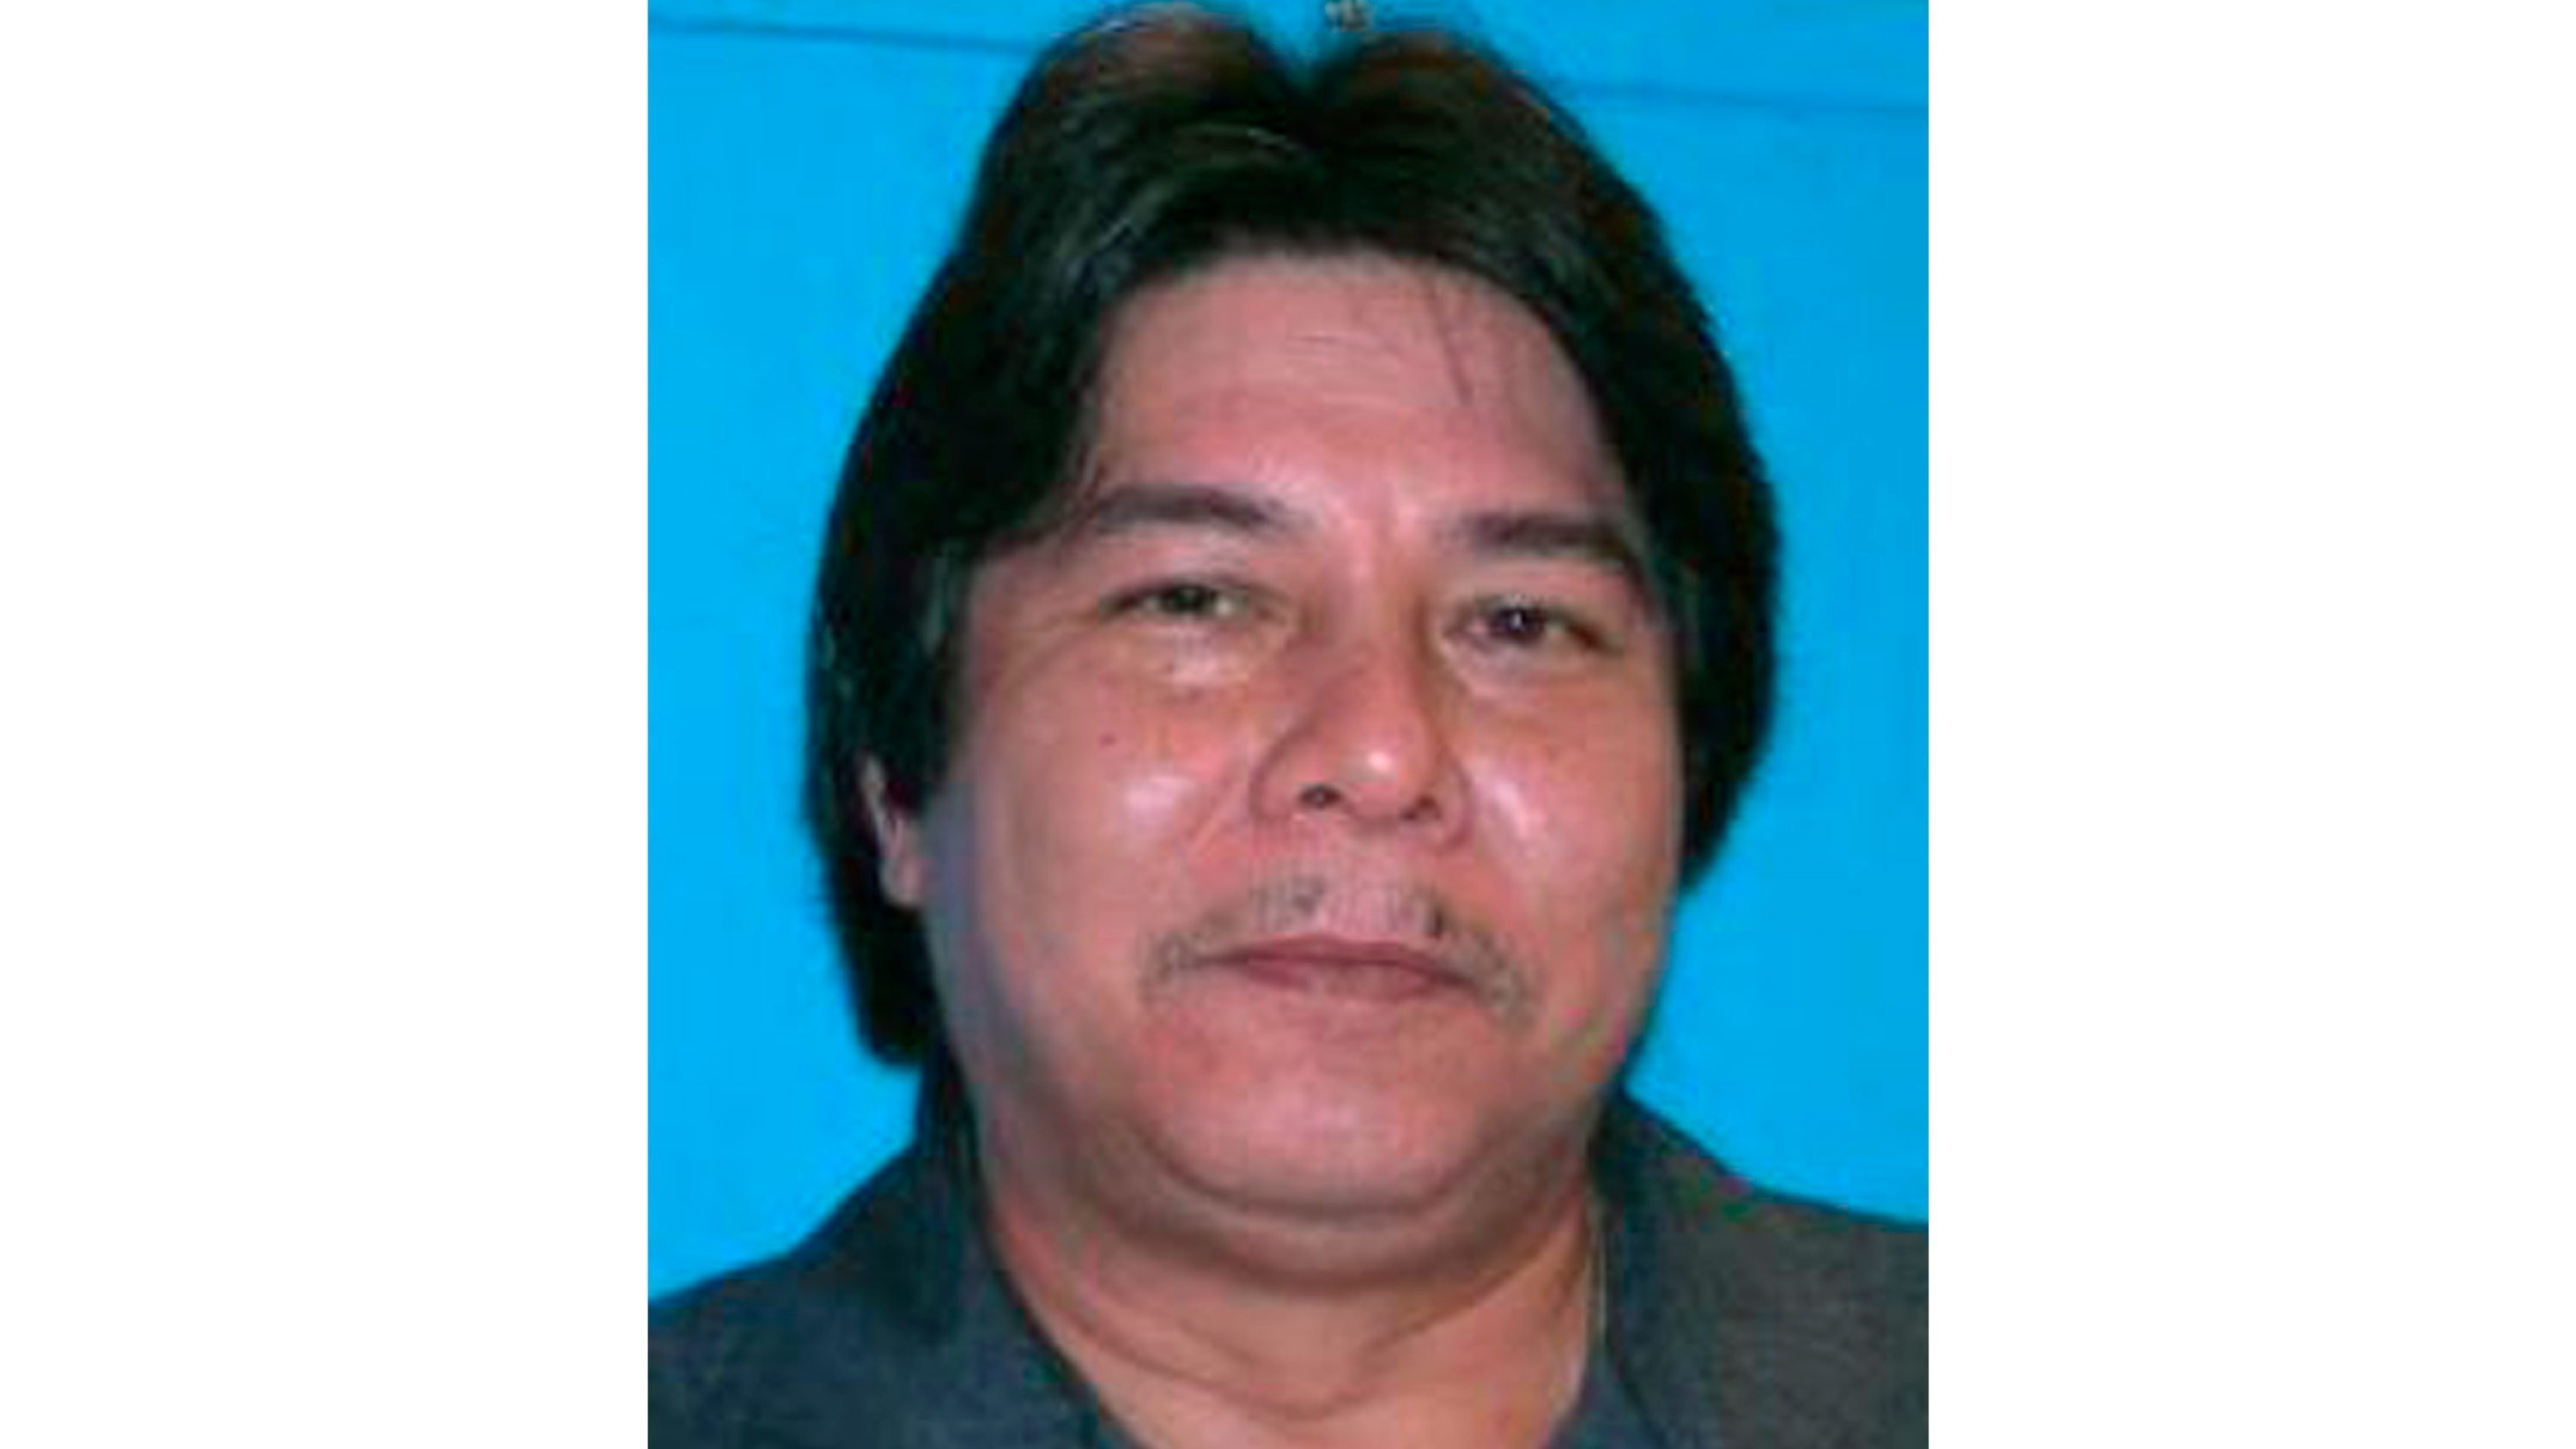 This image is for use with this specific article only** Randall Saito the 59-year-old escapee from a Hawaii mental hospital